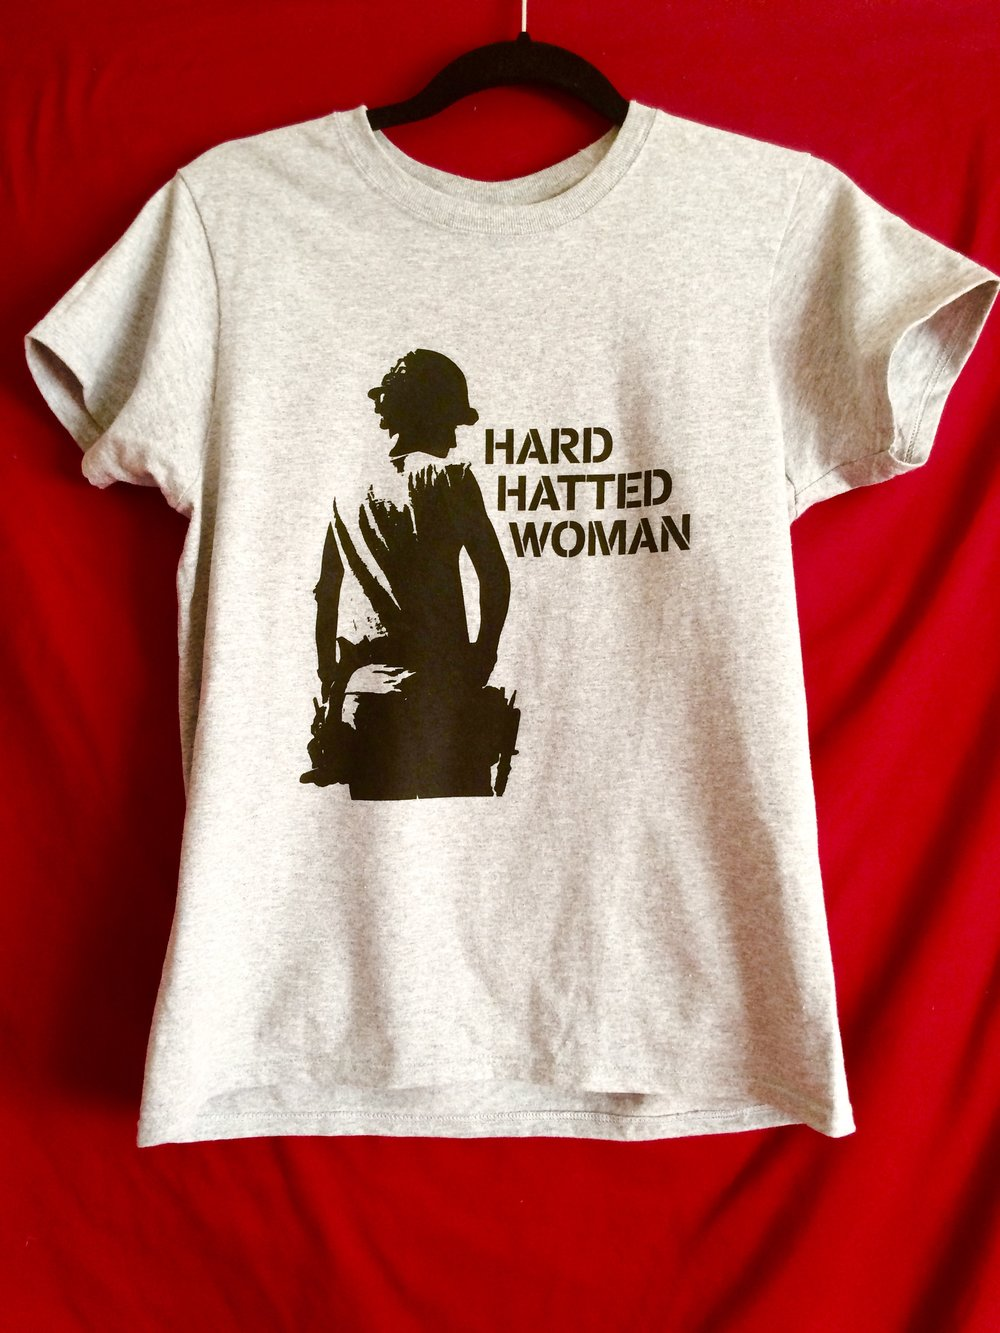 Are you a hard hatted woman at heart? Let the world know it! - Donate $75 or more today and get your FREE TEE and matching hardhat sticker.